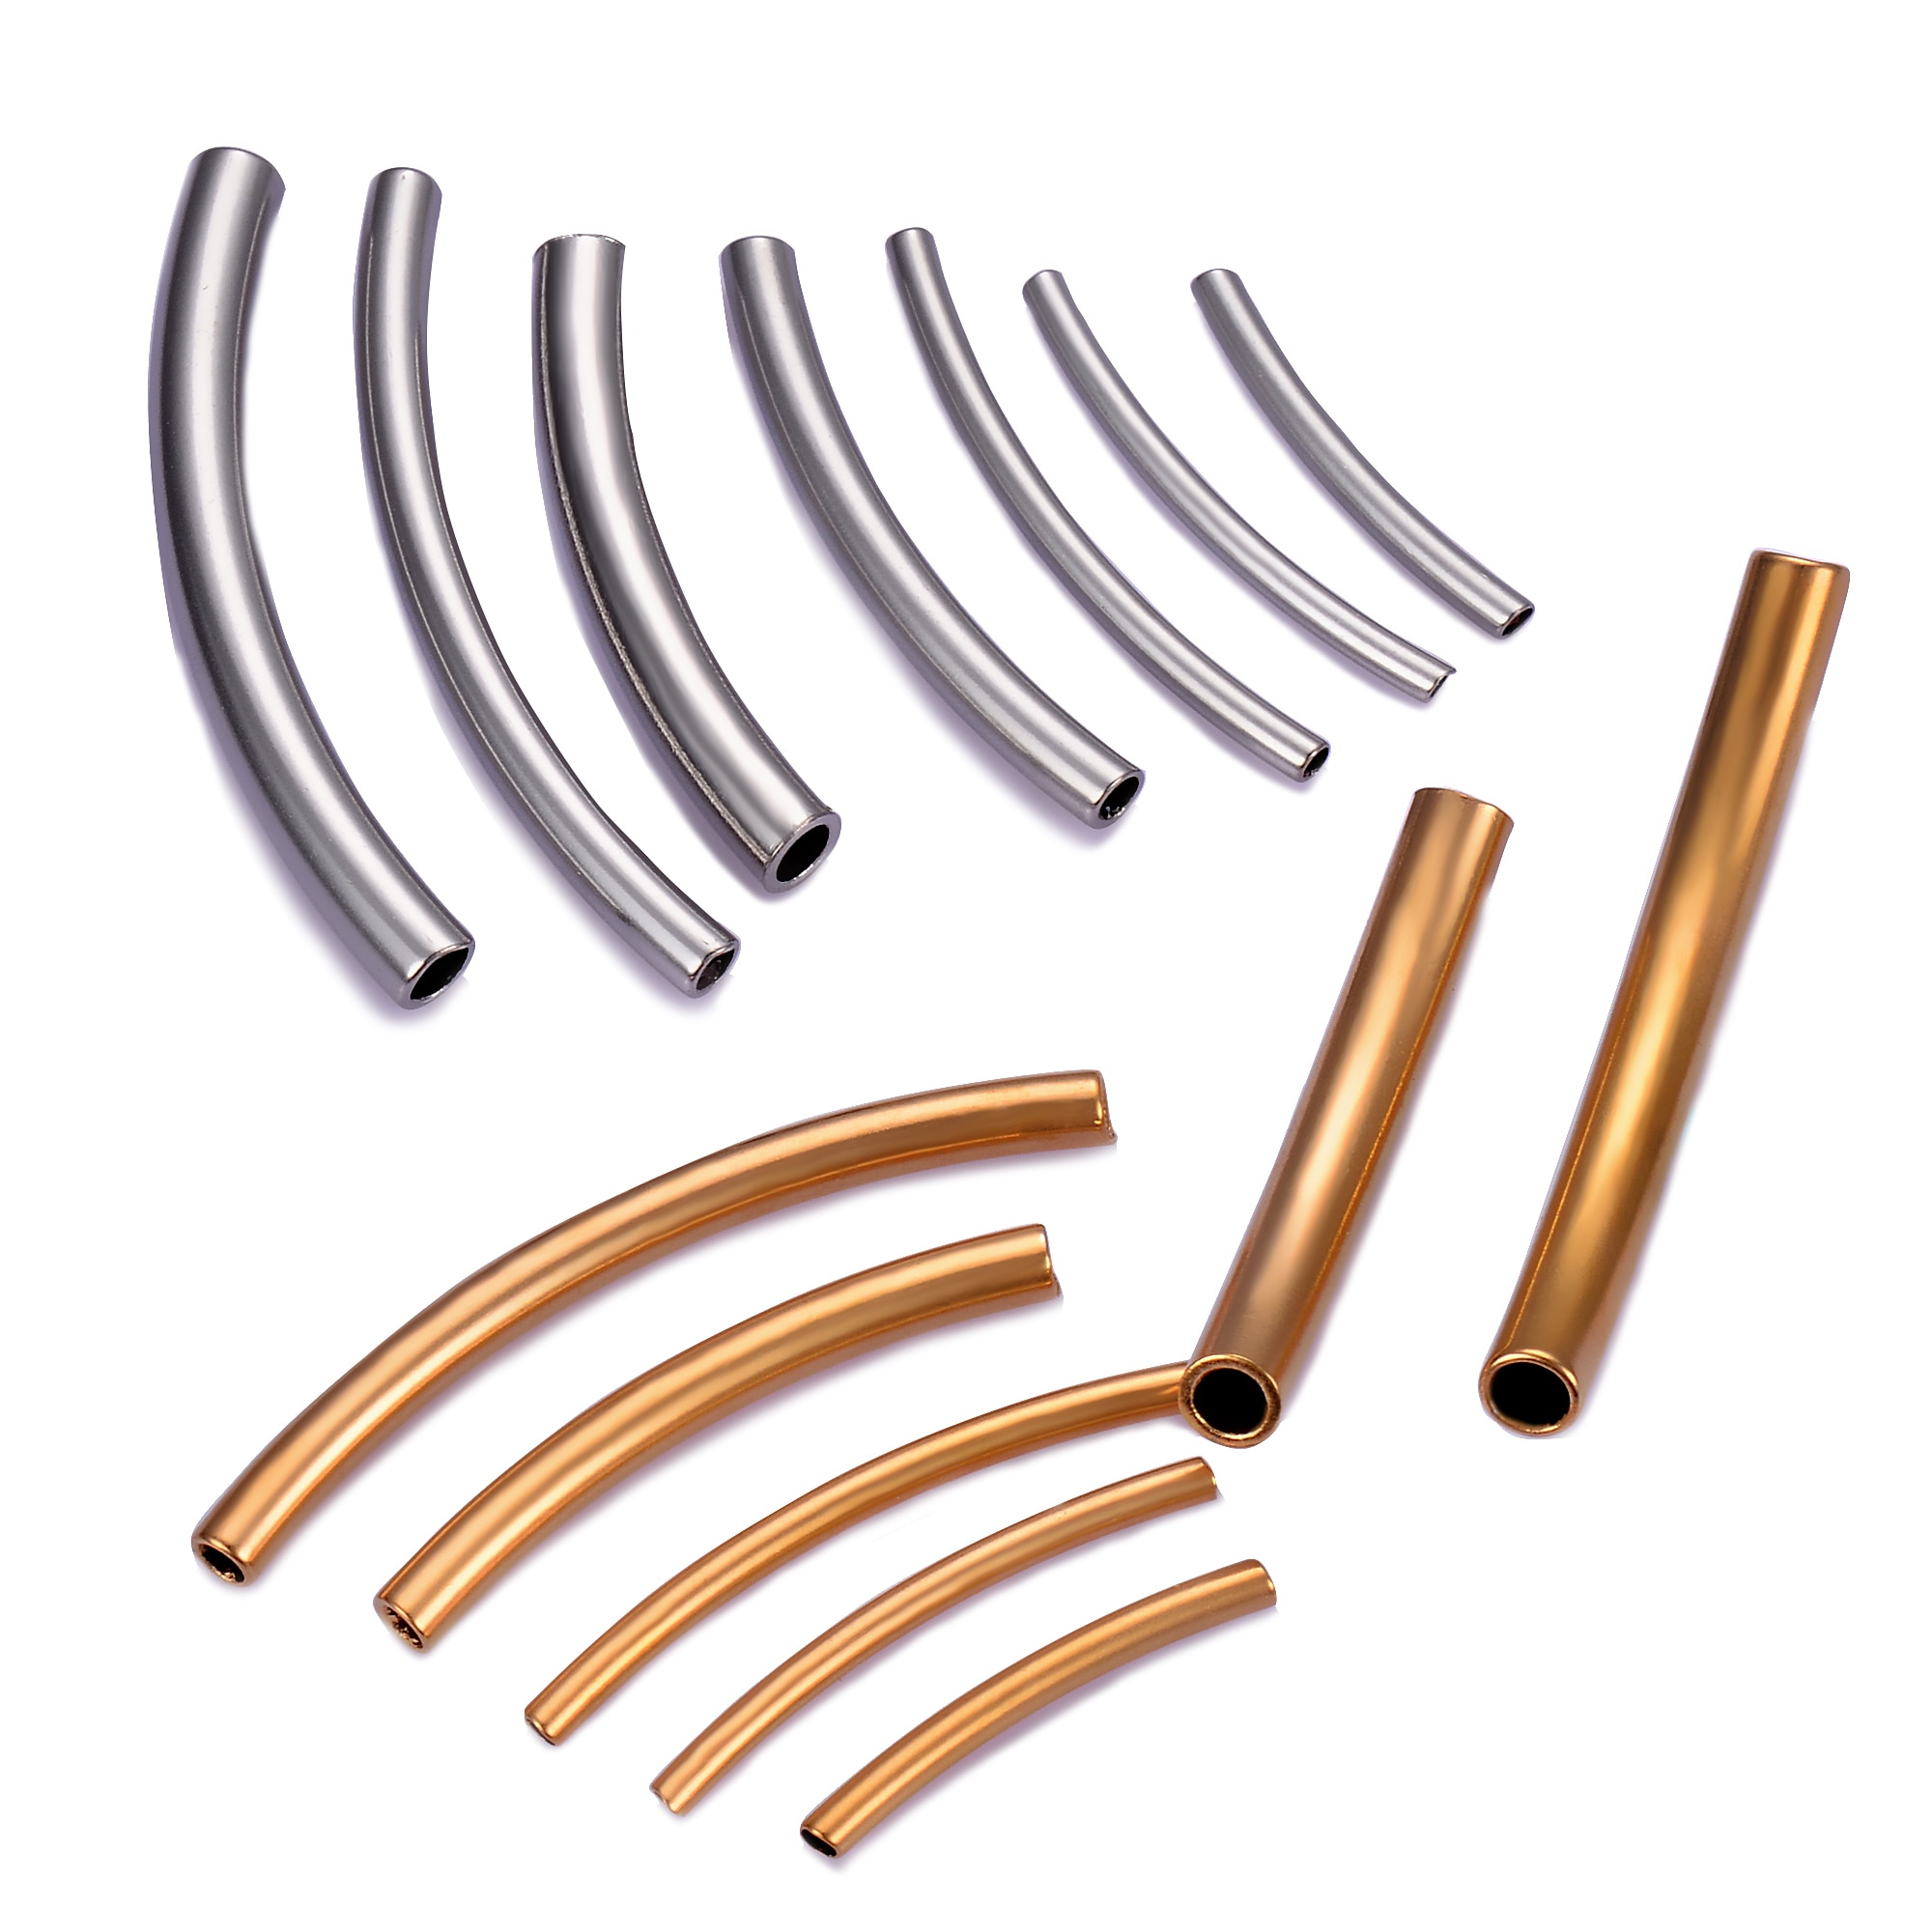 AliExpress - 10 pcs stainless steel Curved Tube Spacer Beads Connector Jewelry Findings For Bracelets Necklace DIY Jewelry Making Accessories